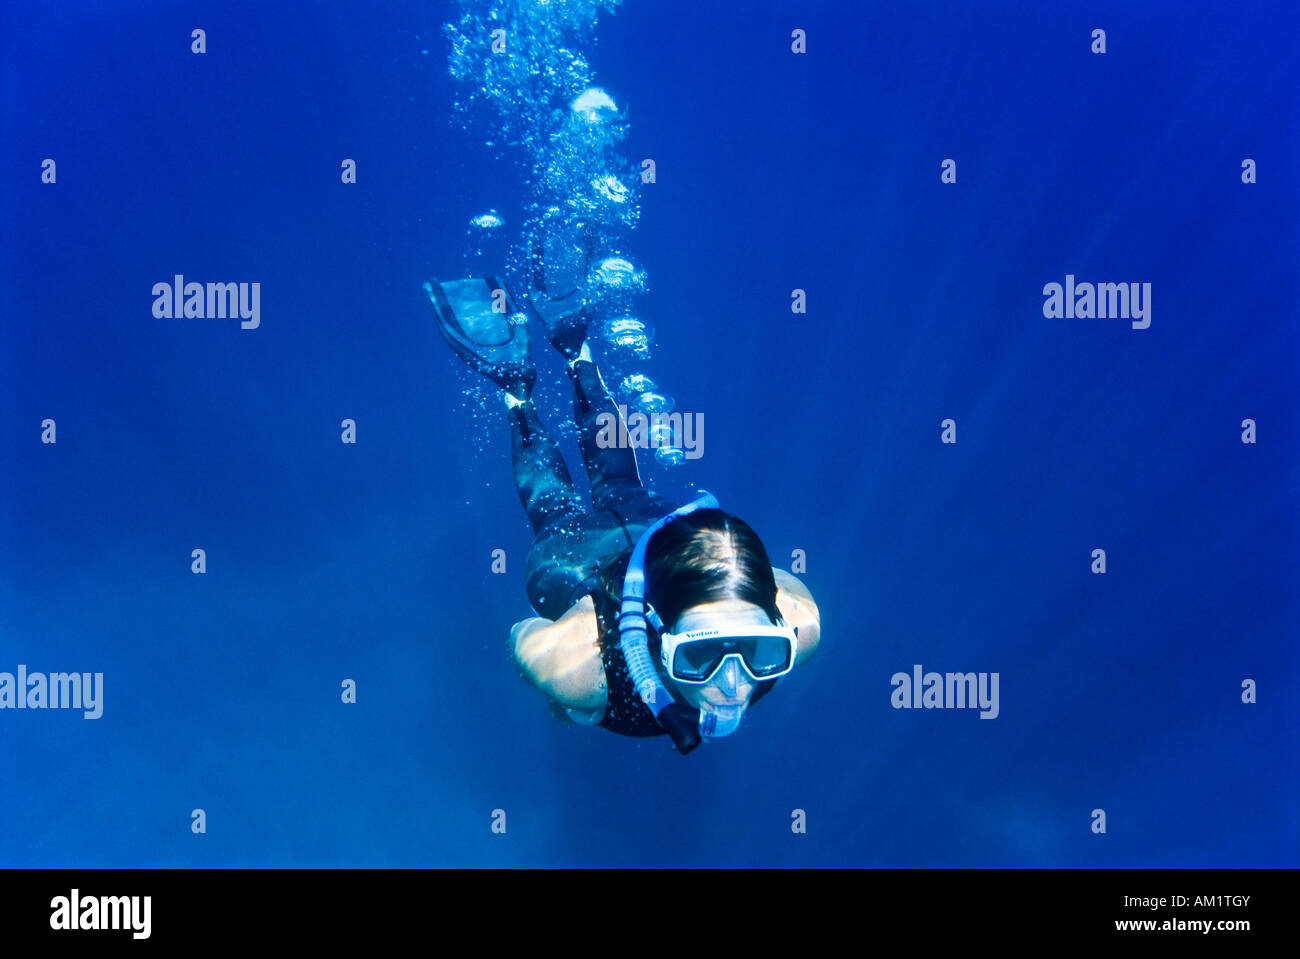 Woman snorkeling, Crete, Greece - Stock Image